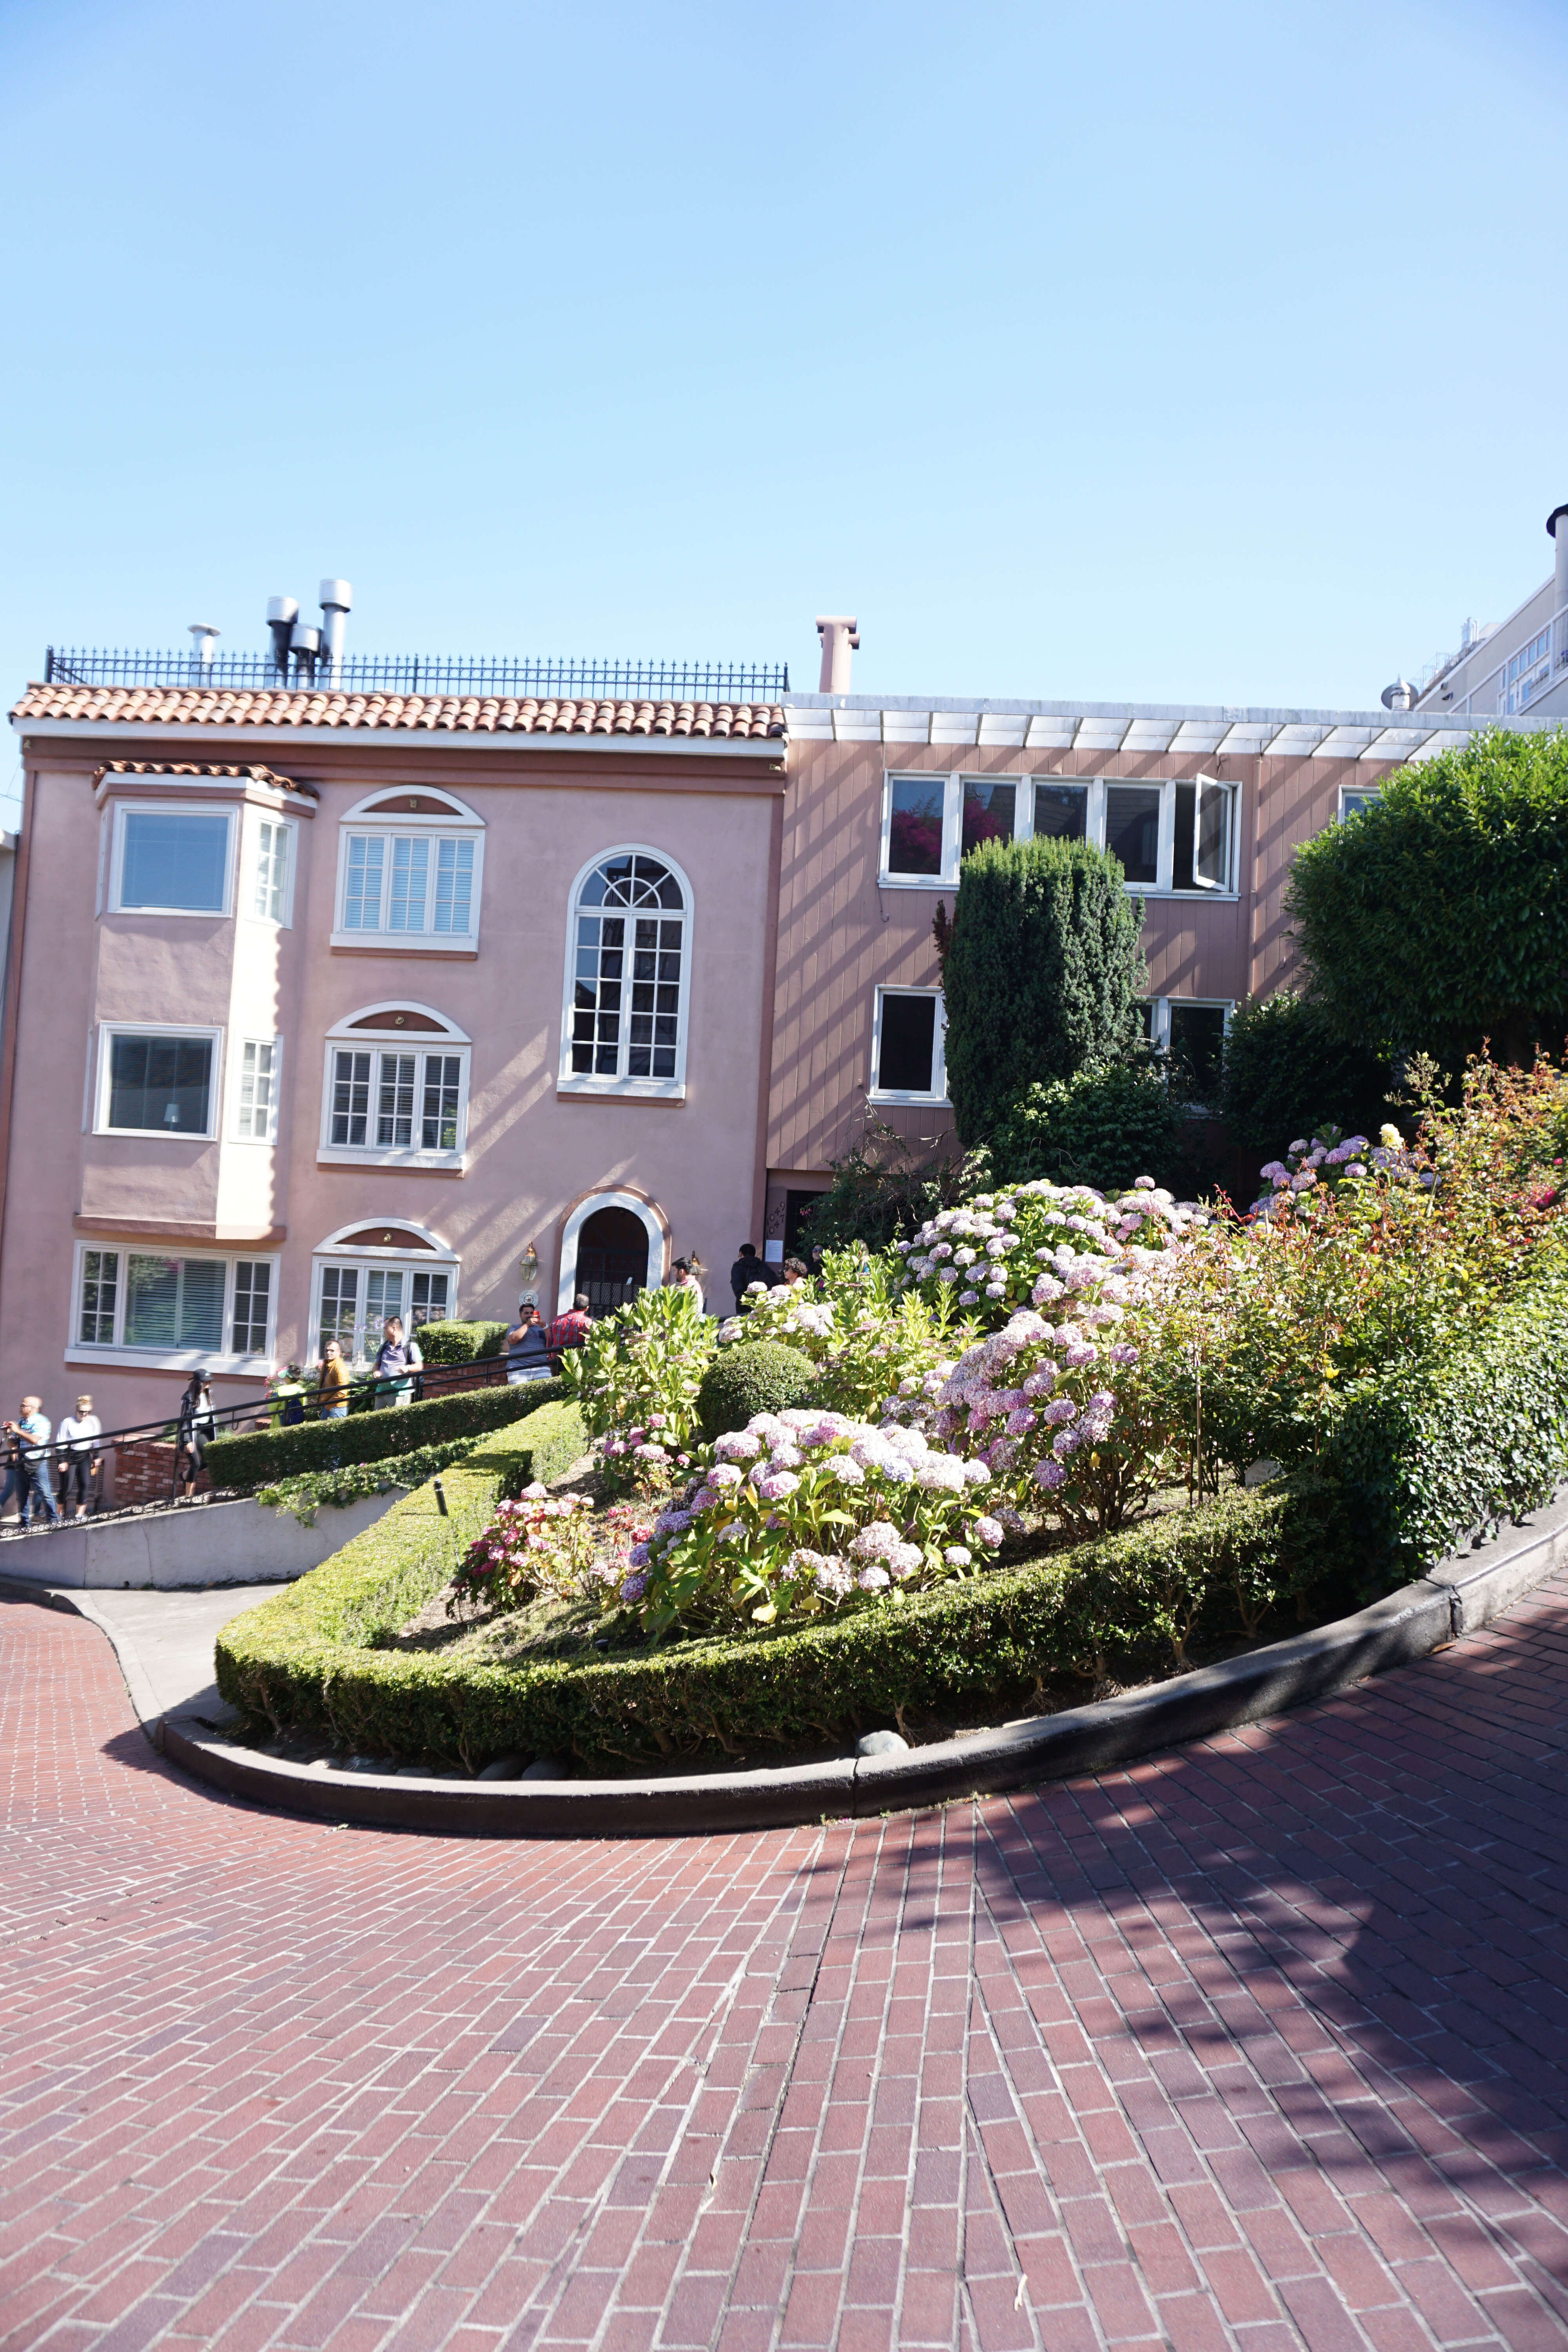 This pink house on Lombard Street in San Francisco is a dream.